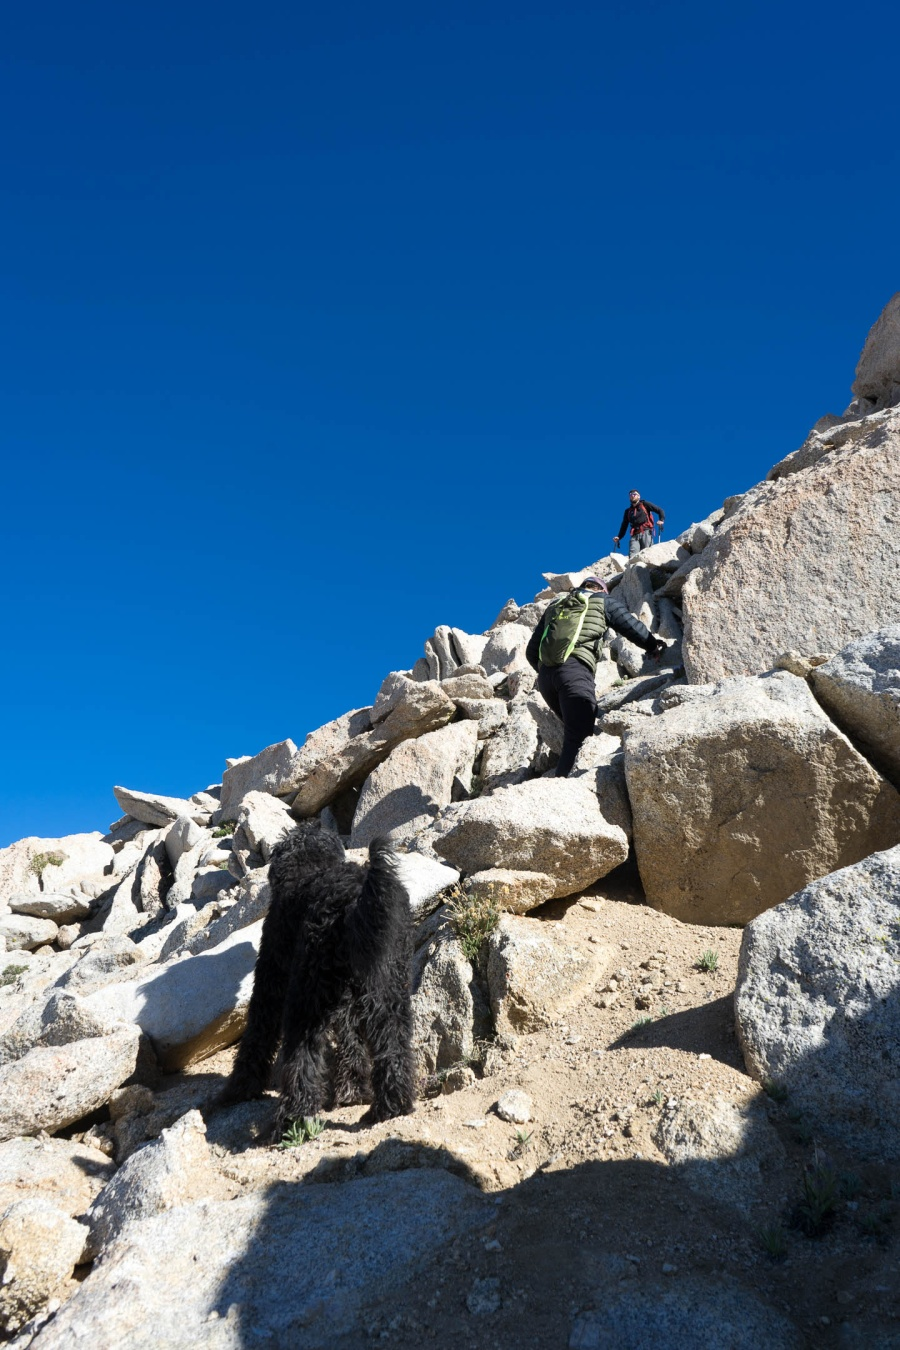 Crossing the Boulder Field on Mt. Langley